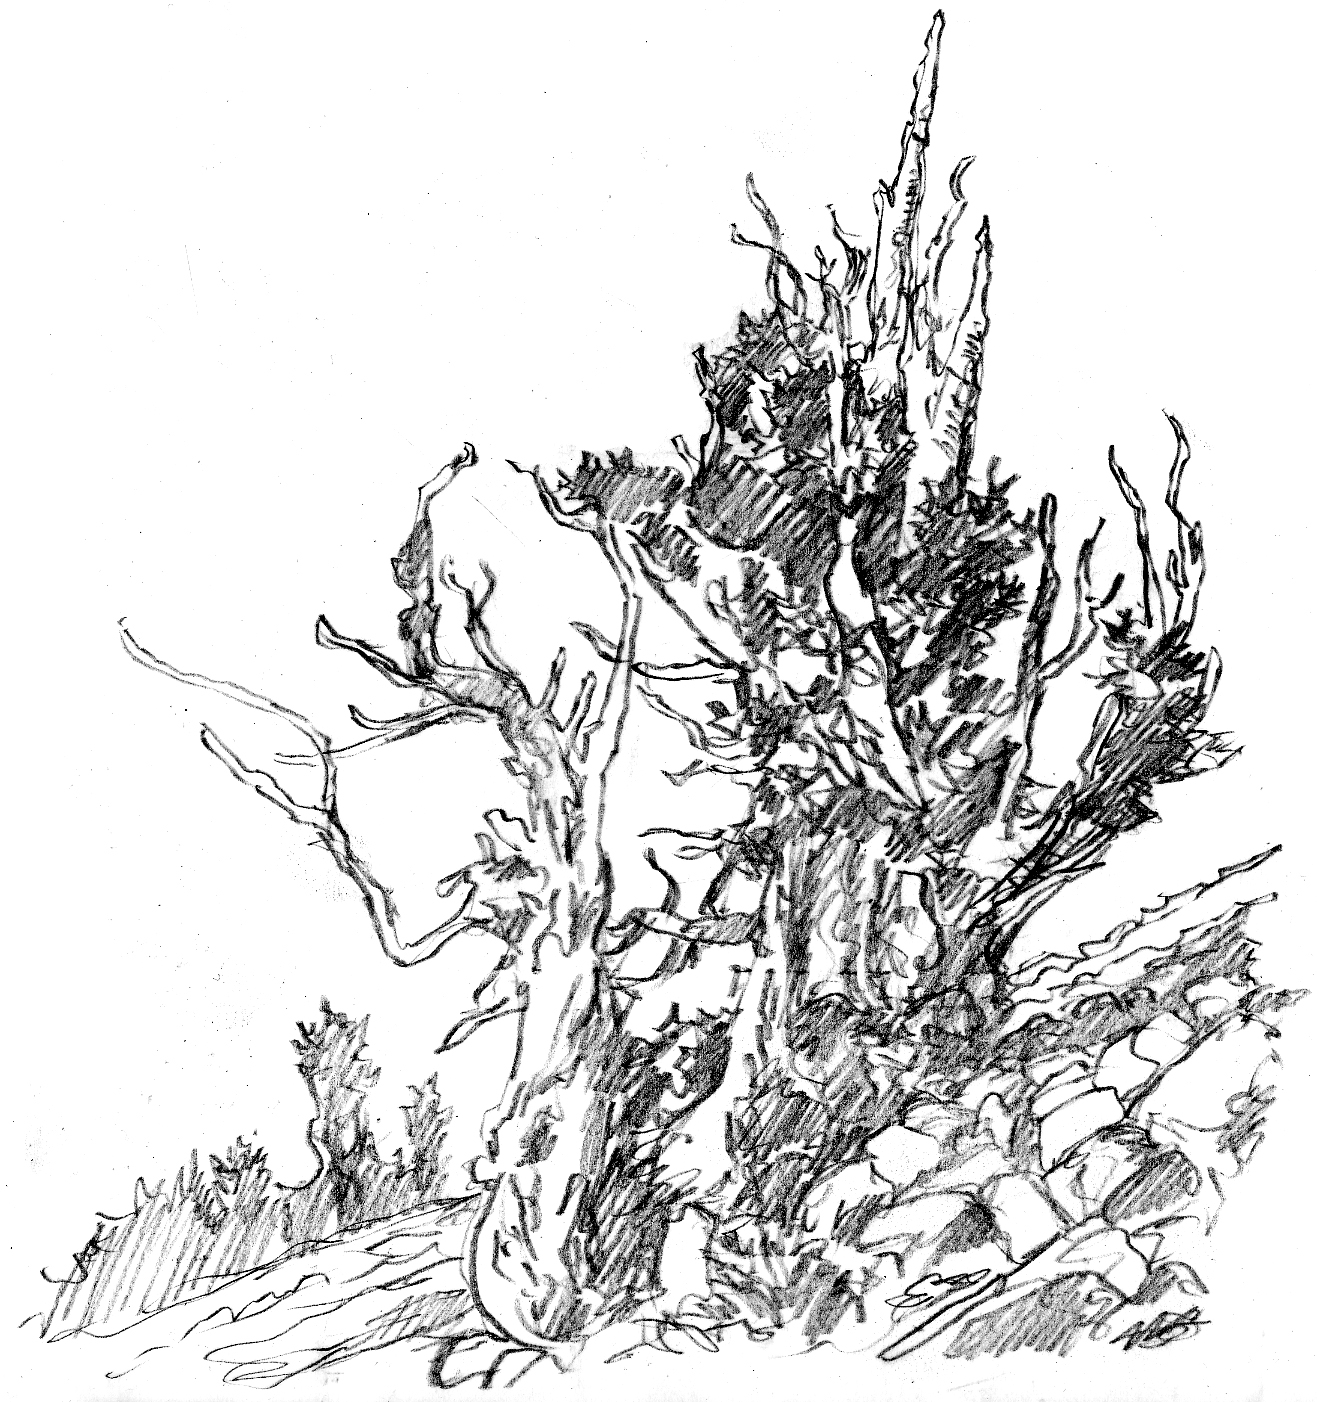 how to draw pine trees step by step tree sketch drawing at paintingvalleycom explore trees step to how pine by step draw